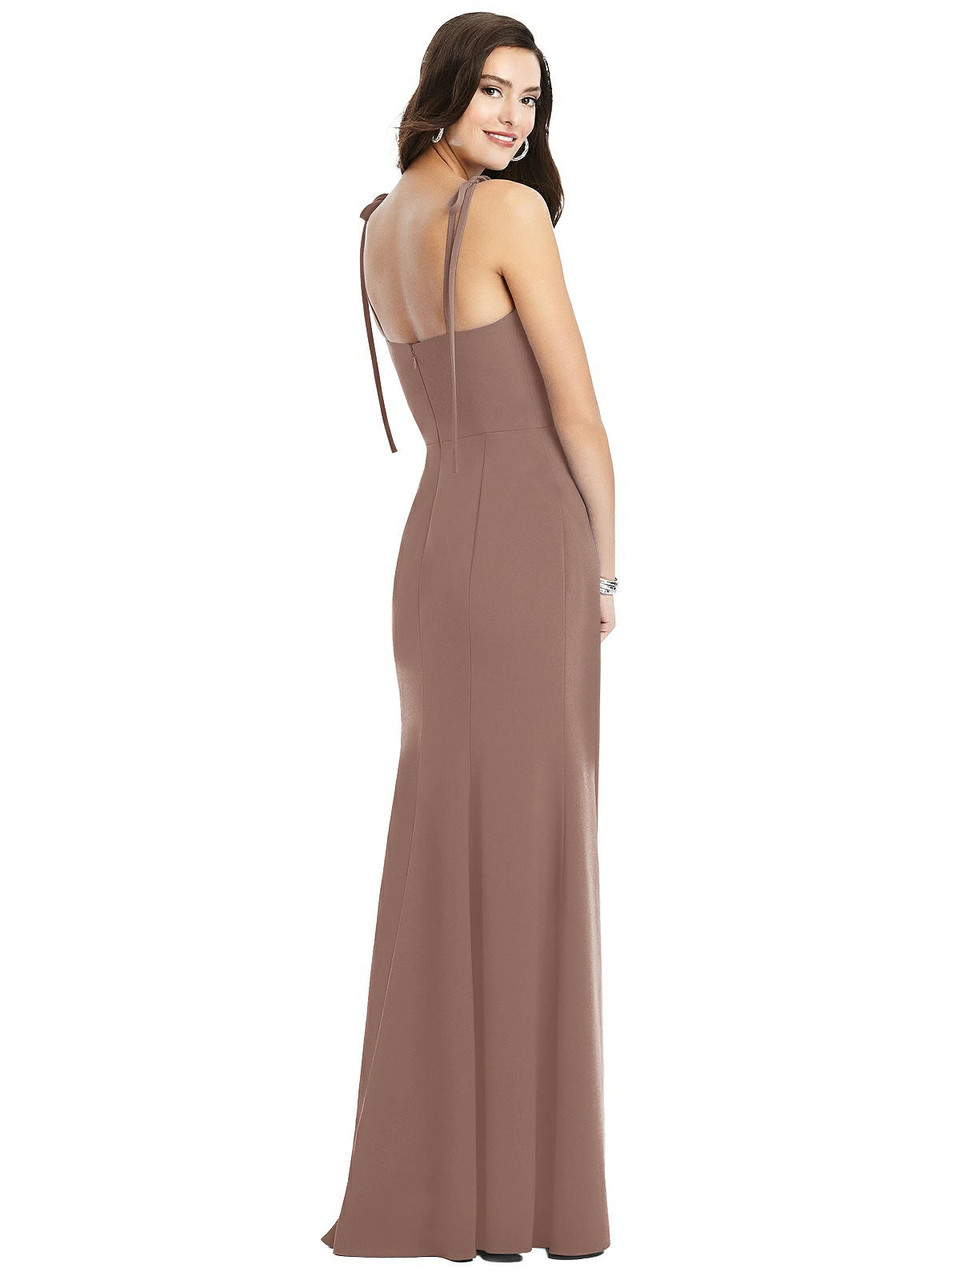 Dessy Collection Style 3070     Crepe - Bustier Crepe Gown with Adjustable Bow Straps